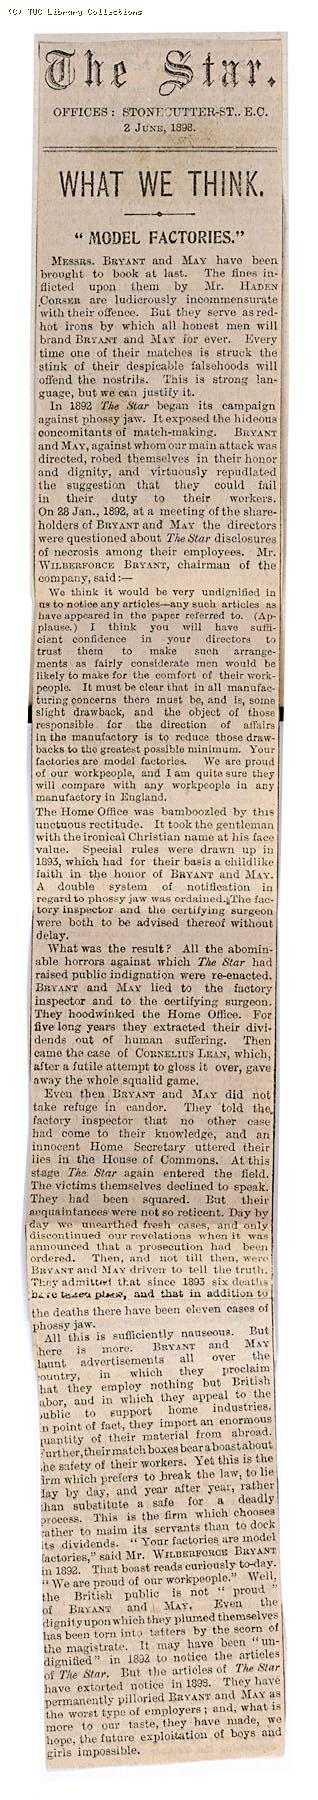 What we think - model factories, 'The Star' 2 June 1898